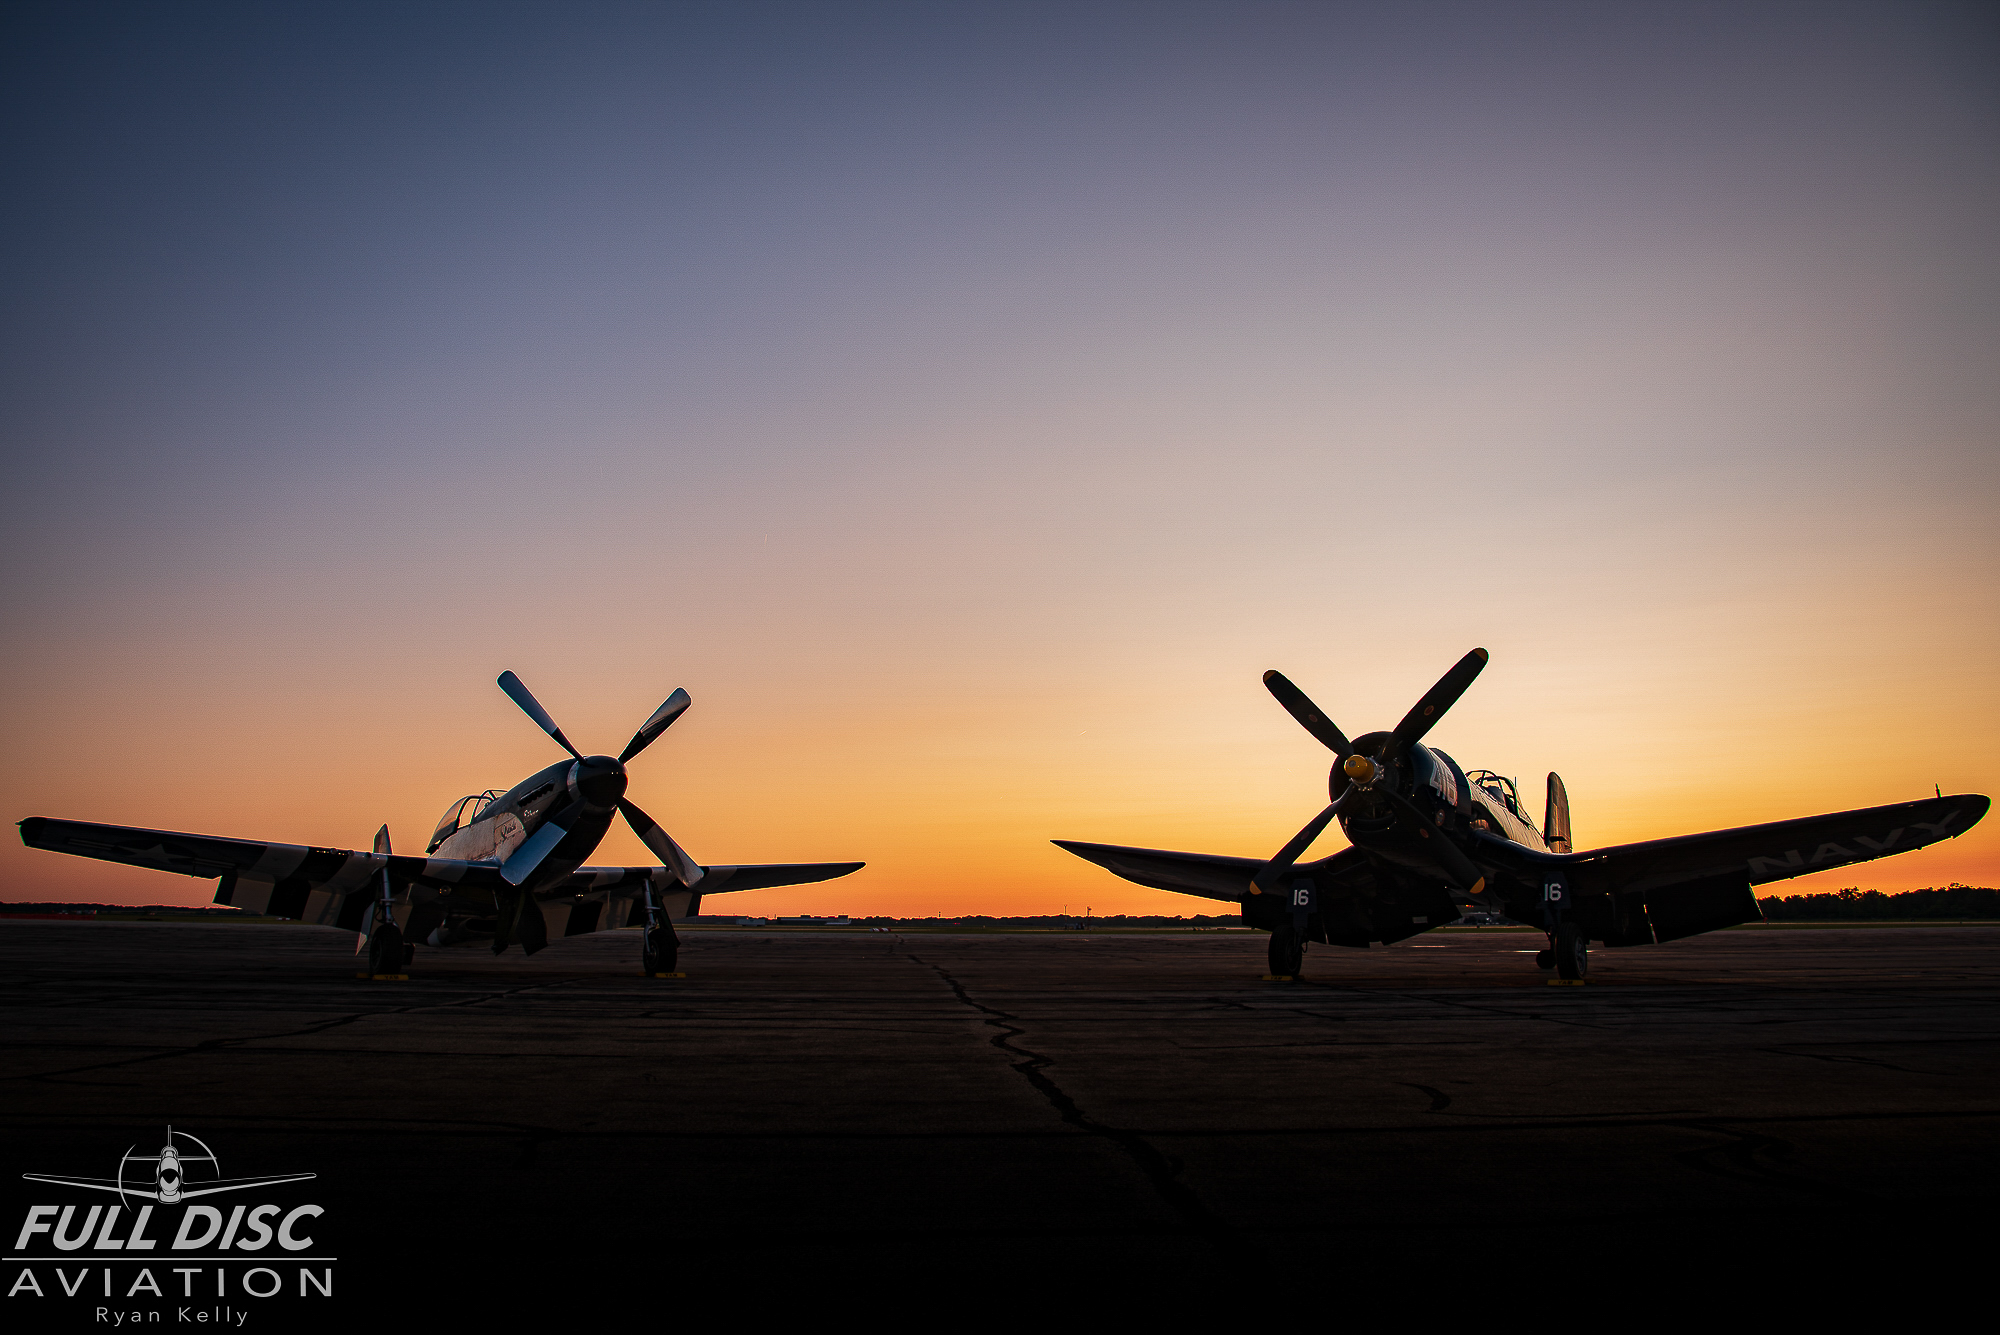 ClassOf45_FullDiscAviation_RyanKelly_August 01, 2019_14.jpg